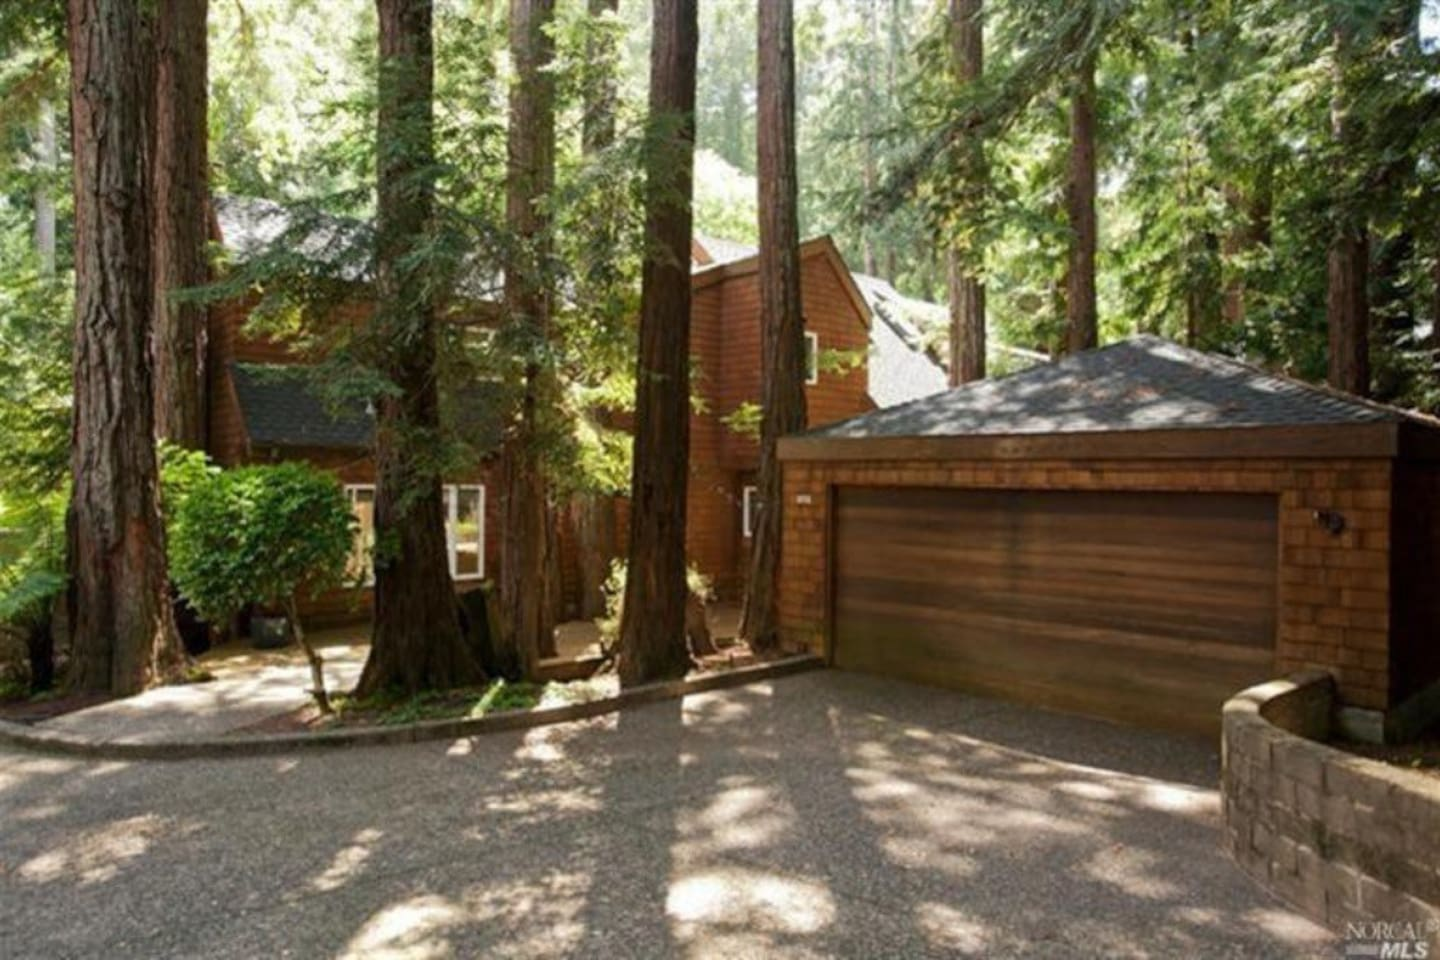 Front of house - redwoods everywhere.